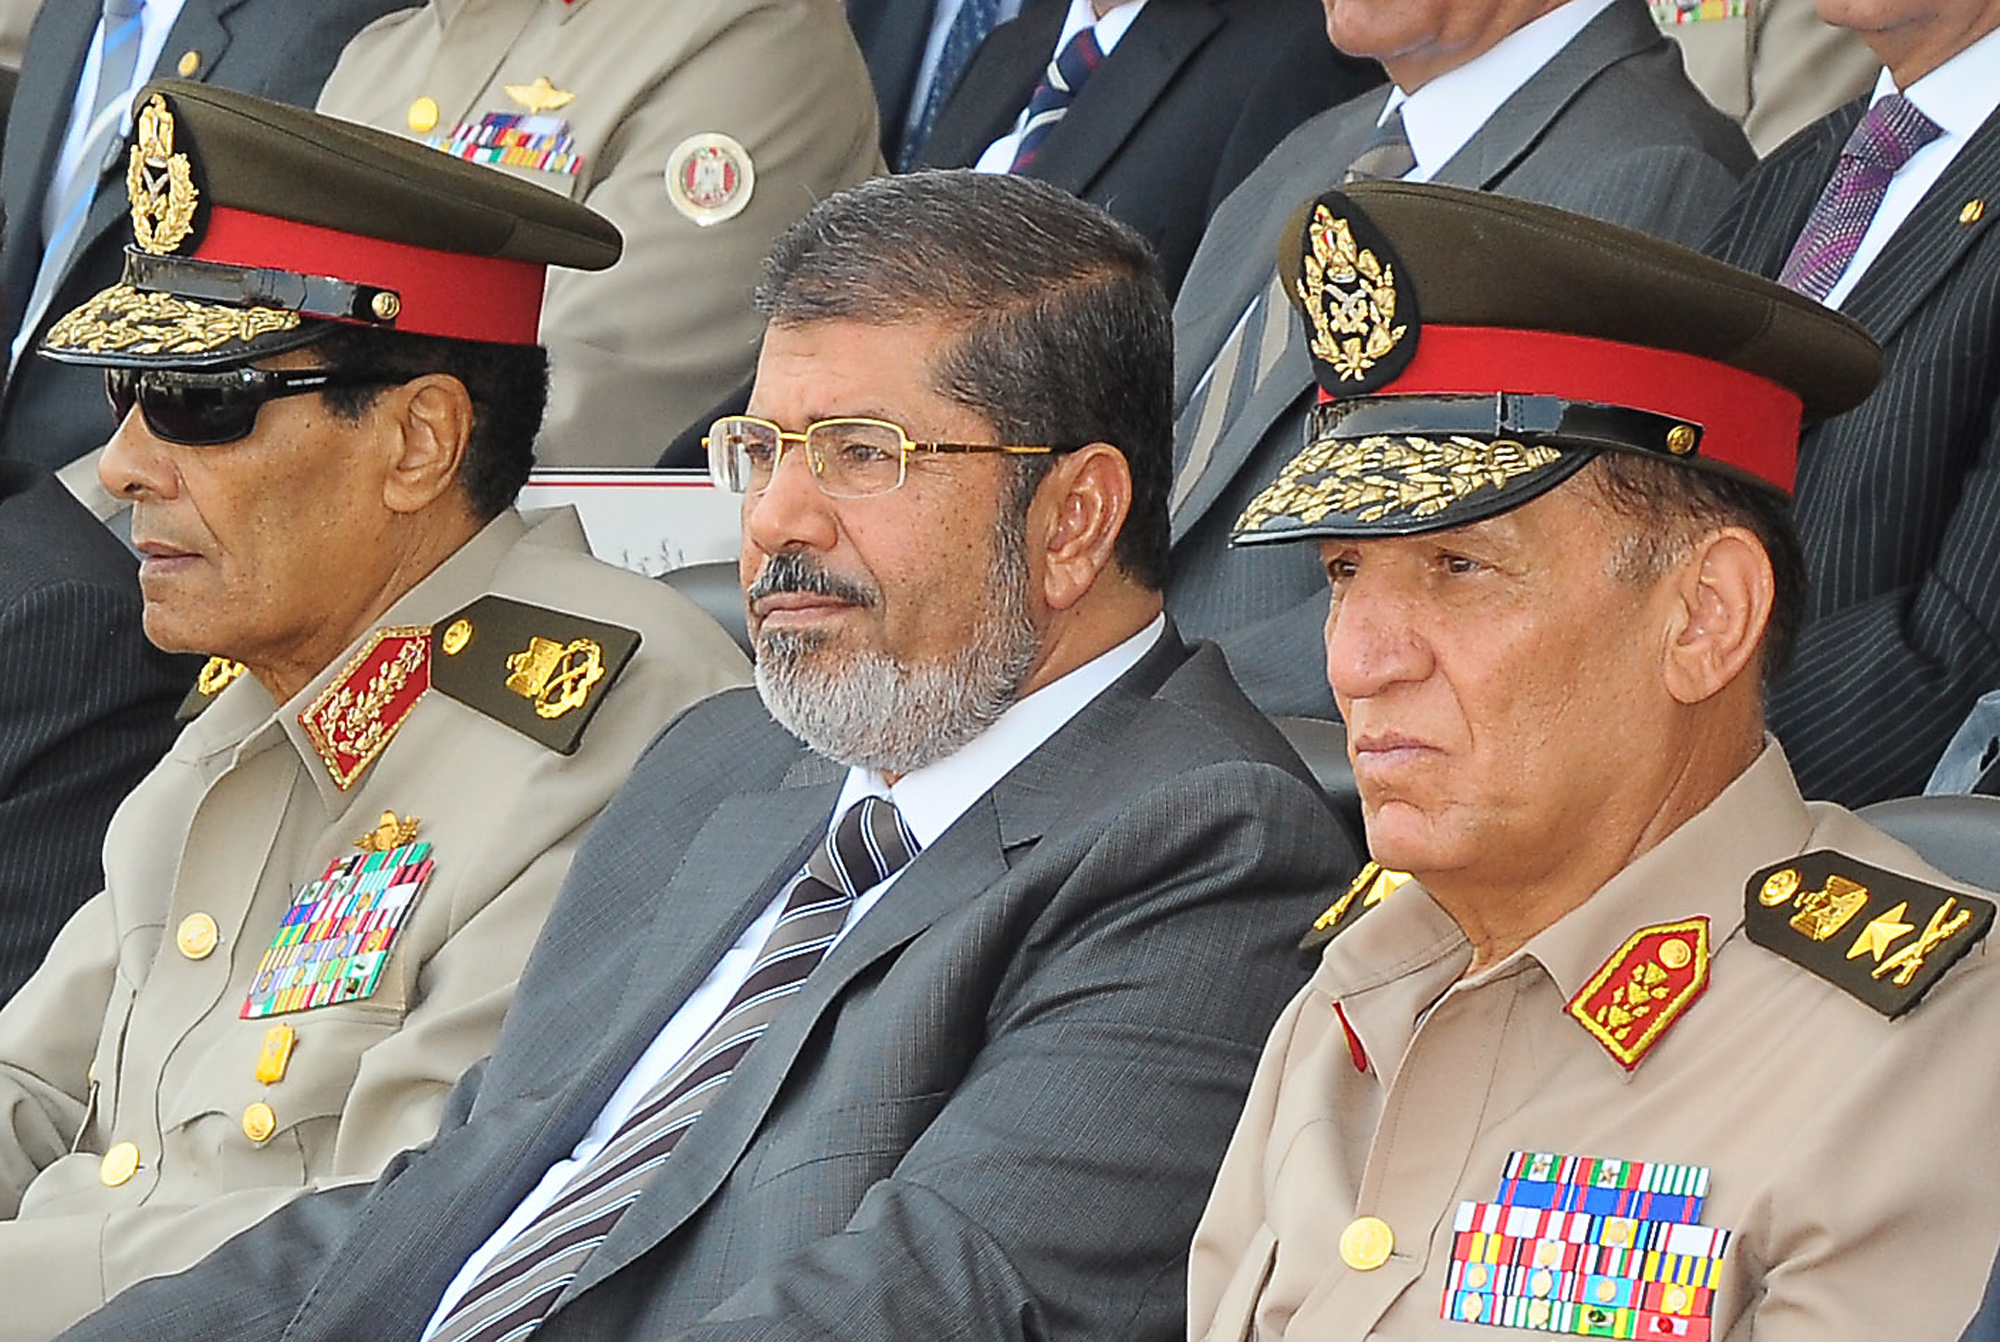 Egyptian President Mohamed Morsi (C), former head of the military council Field Marshal Mohammed Hussein Tantawi (L) and former armed forces chief Sami Anan (R) attending a graduation ceremony of military cadets in Cairo on 12 August 12, AFP PHOTO/EGYPTIAN PRESIDENCY